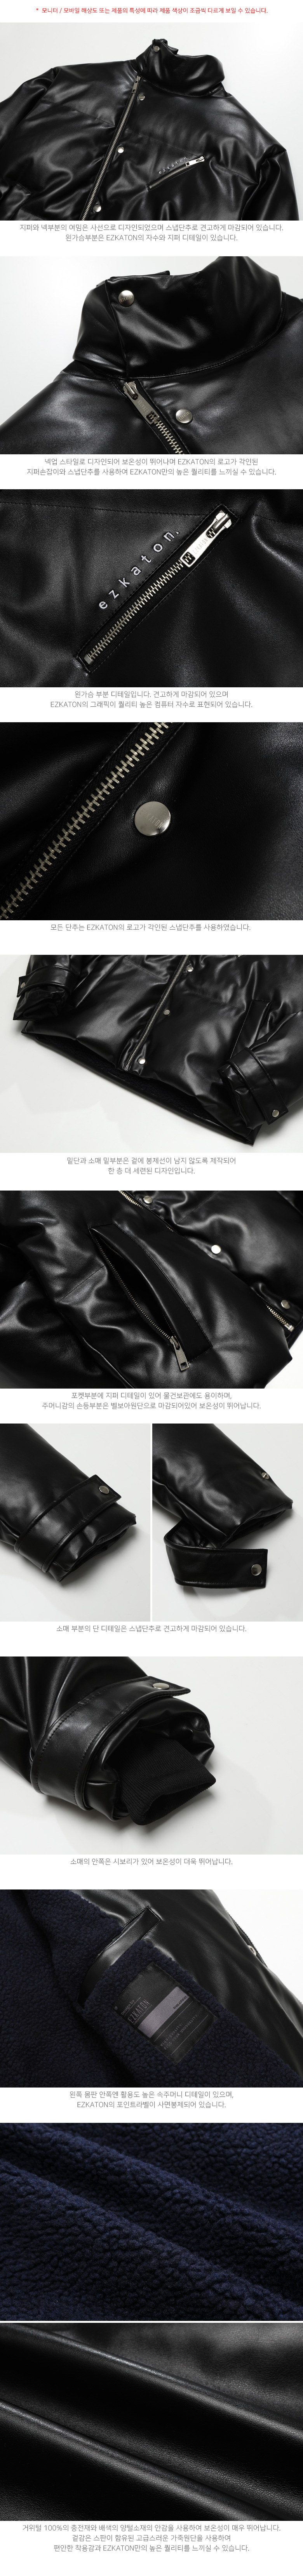 20201104_ez_ezleather_detail_2pack_sh_02.jpg